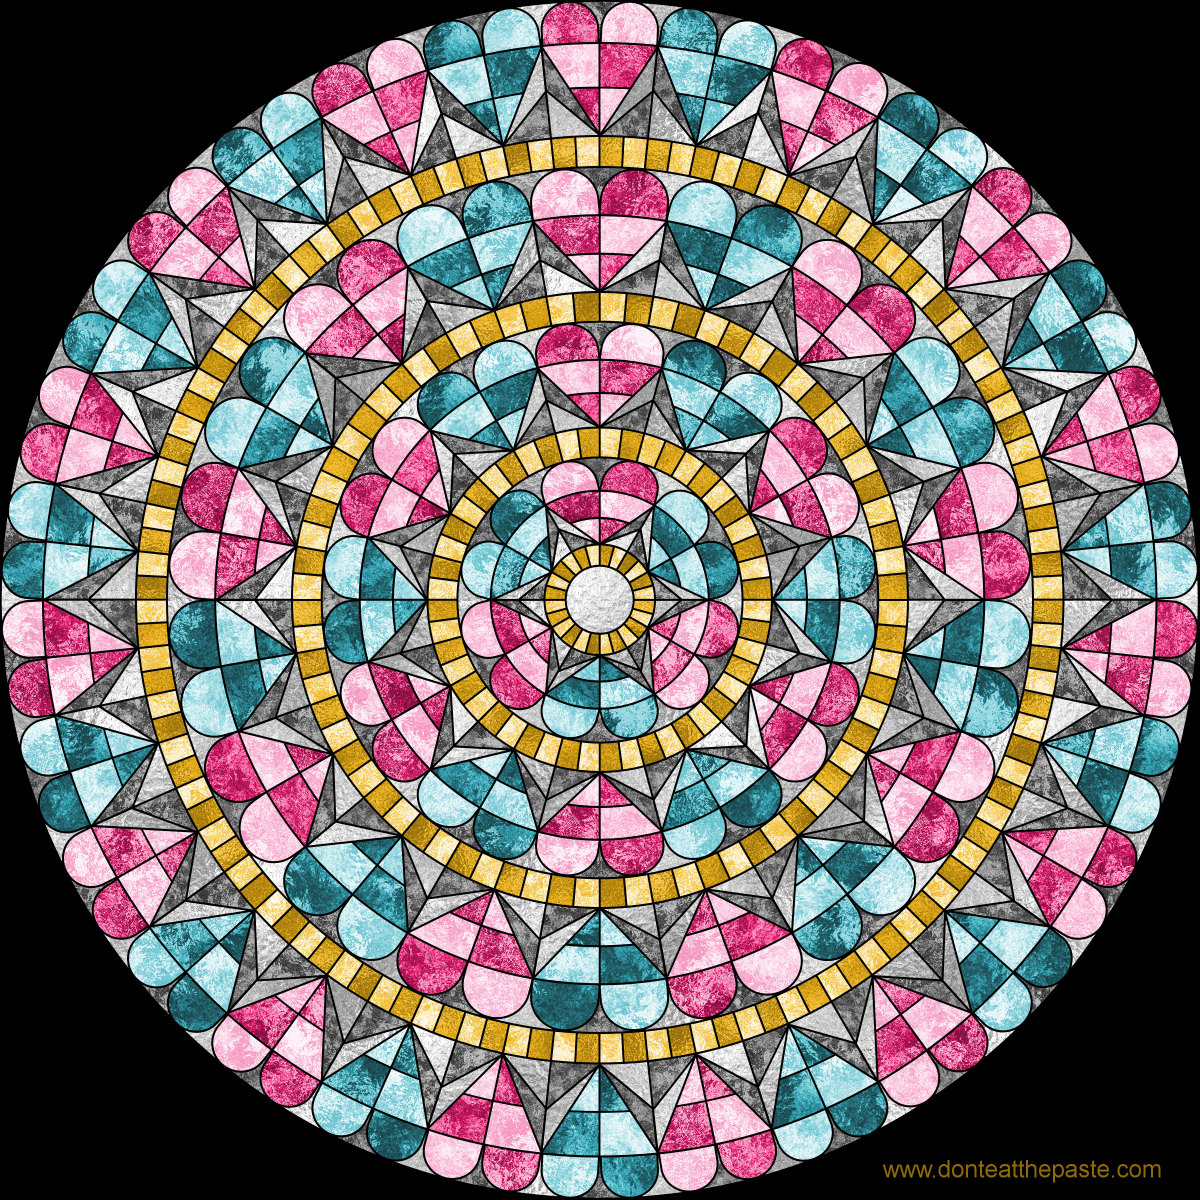 Heart mandala- with a version to color yourself!